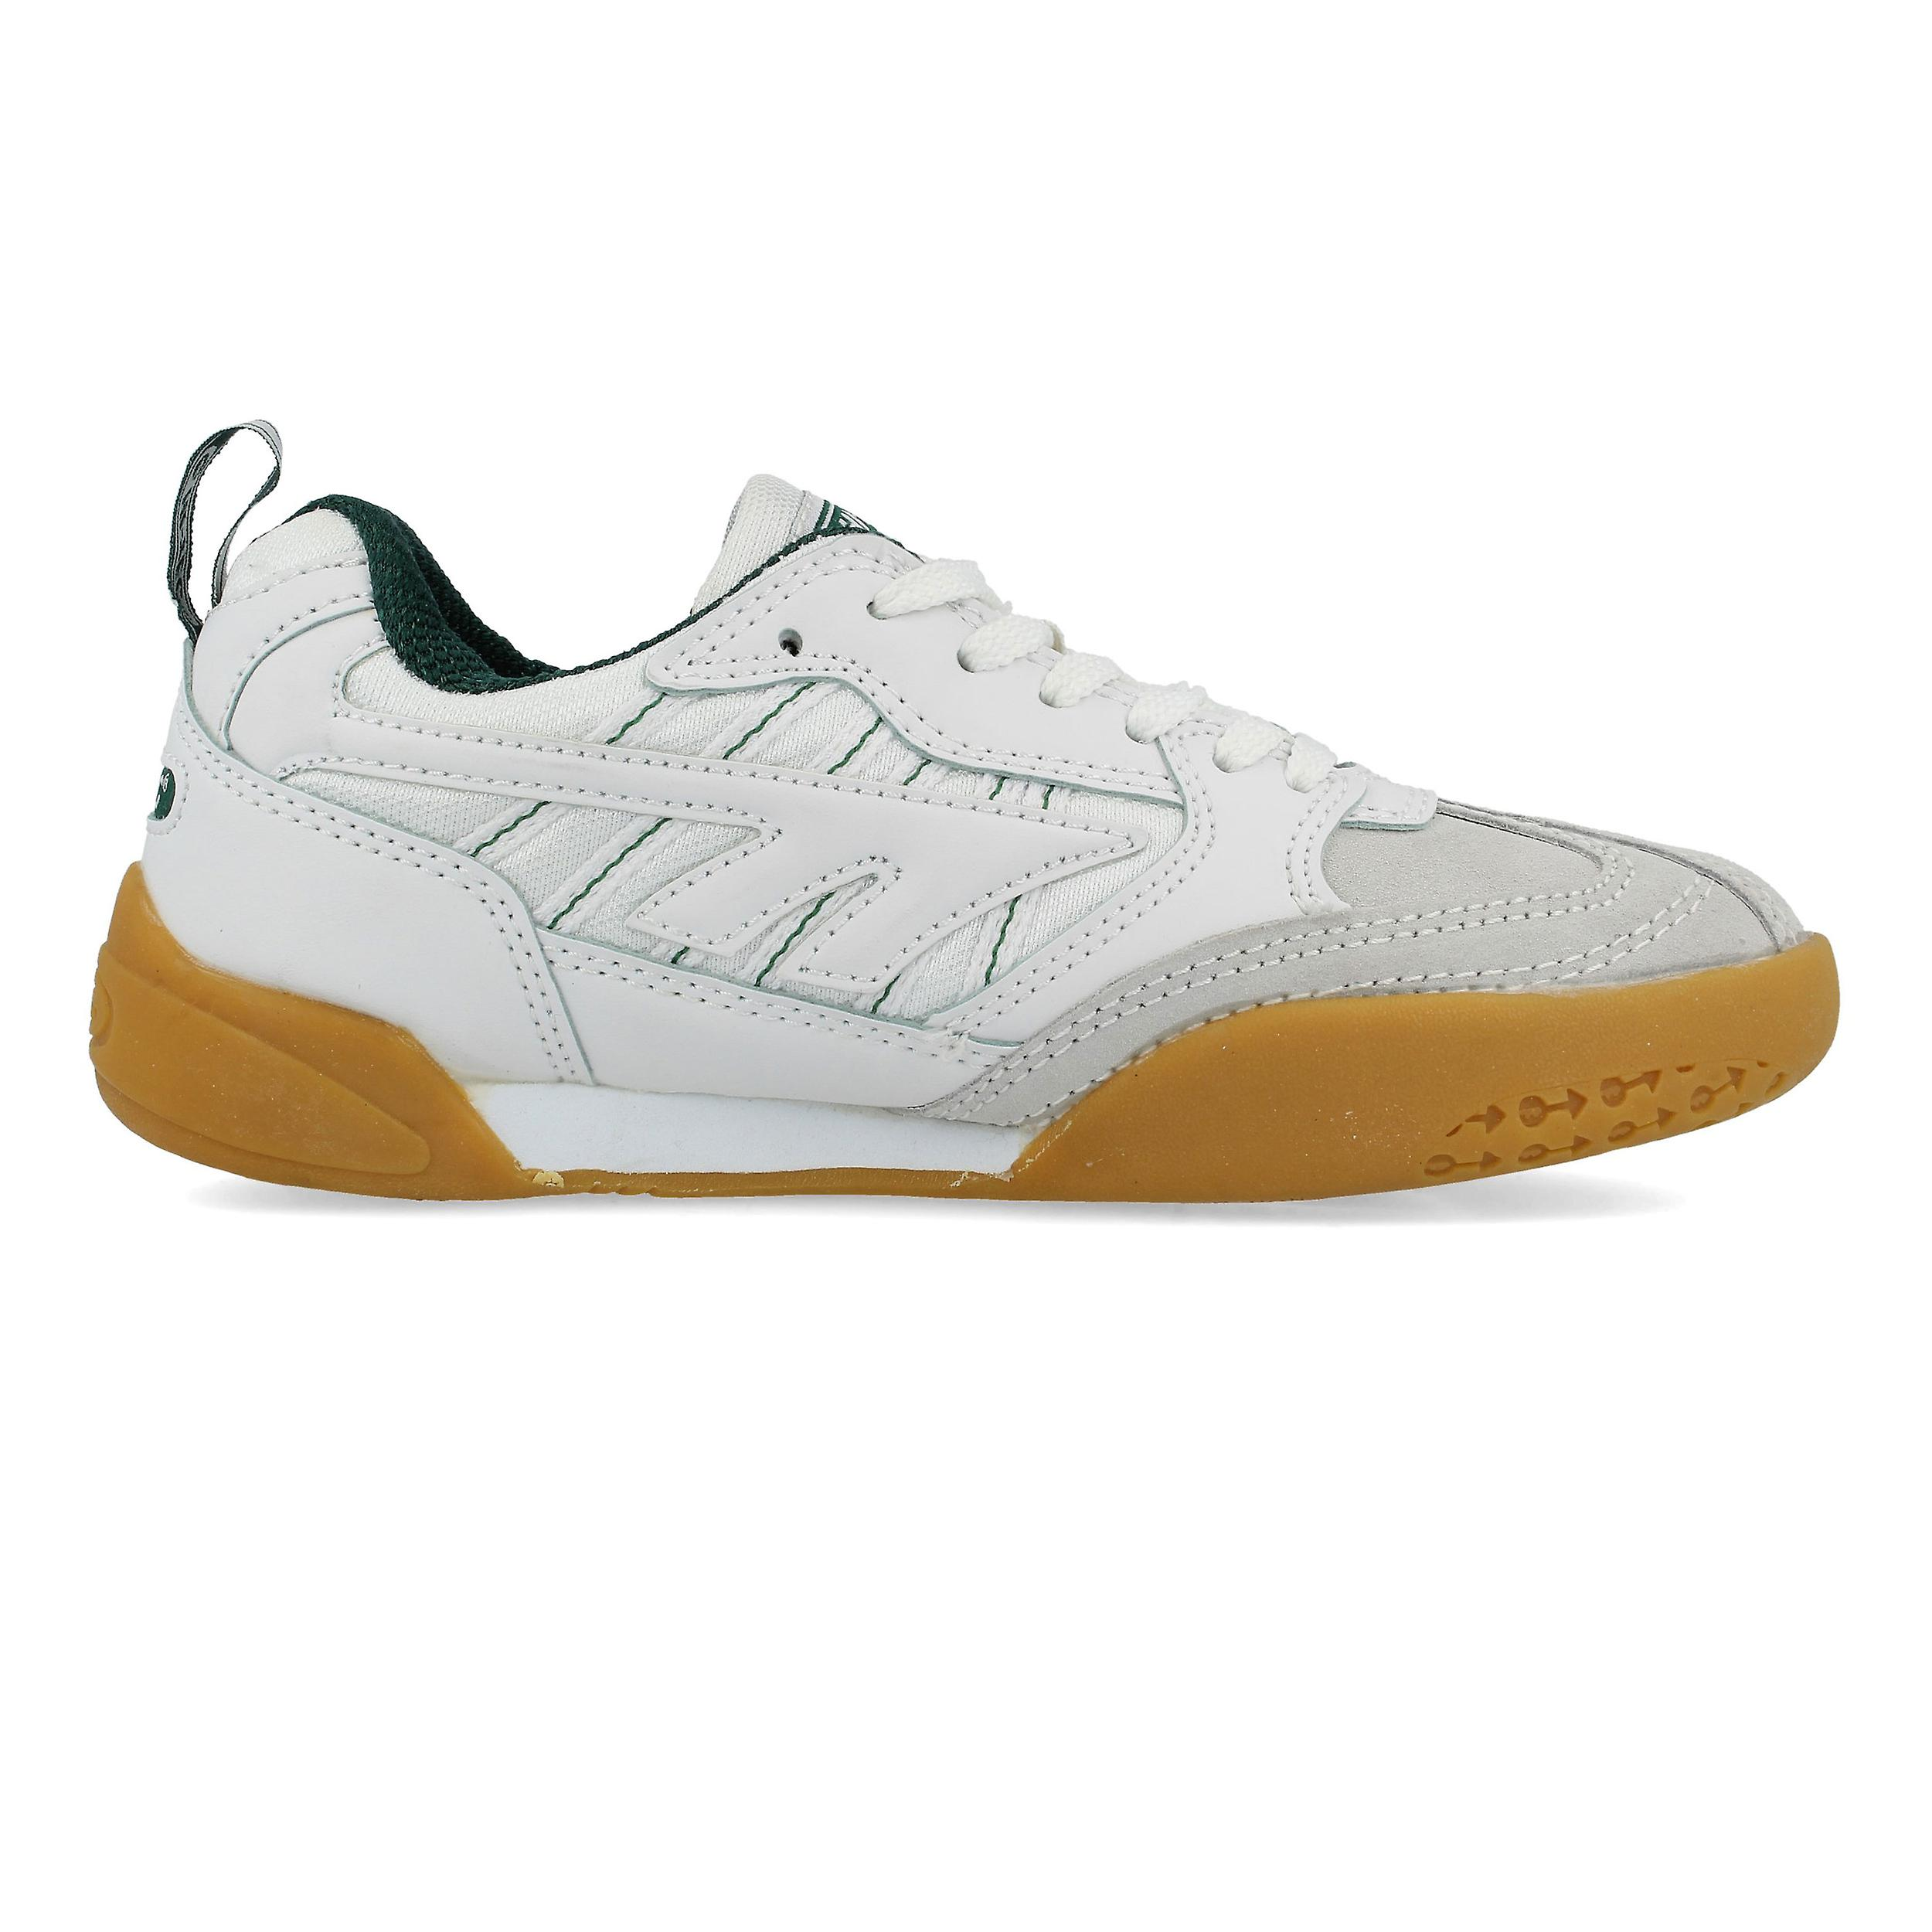 Squash shoe in South Africa Sports & Leisure   Gumtree